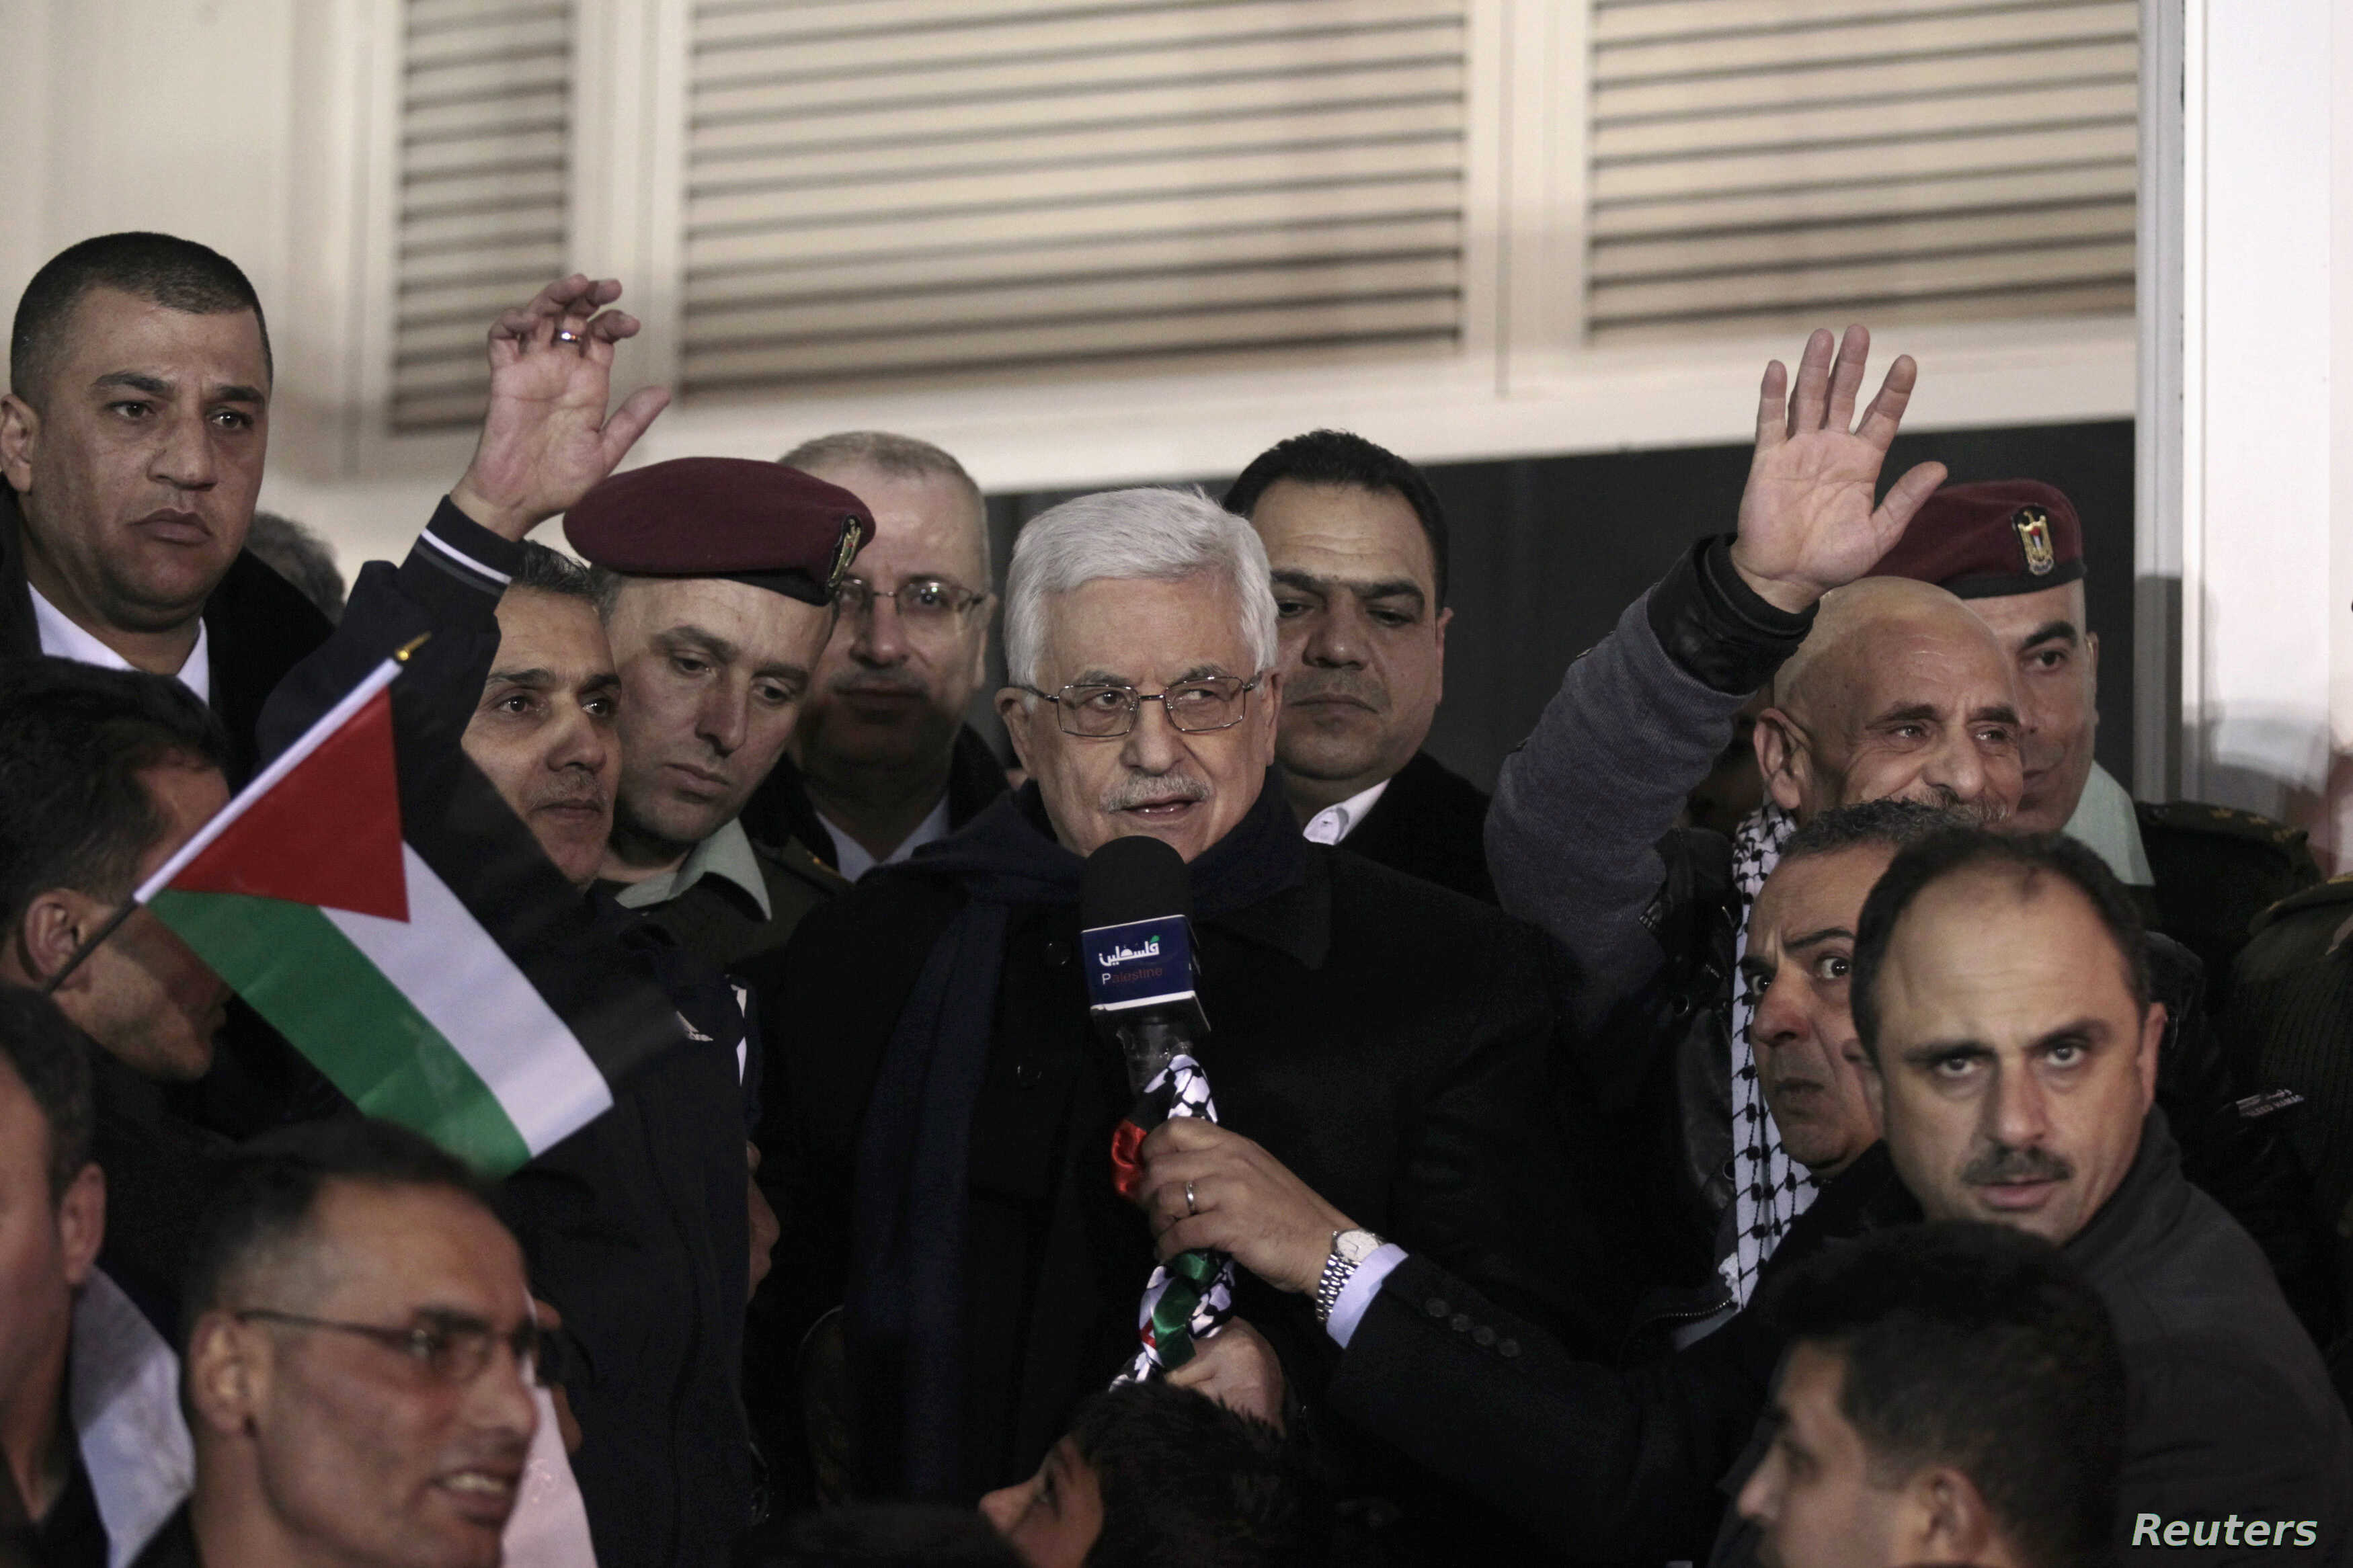 Palestinian President Mahmoud Abbas (C) speaks as he welcomes Palestinian prisoners released by Israel, in the West Bank city of Ramallah, Dec. 31, 2013.